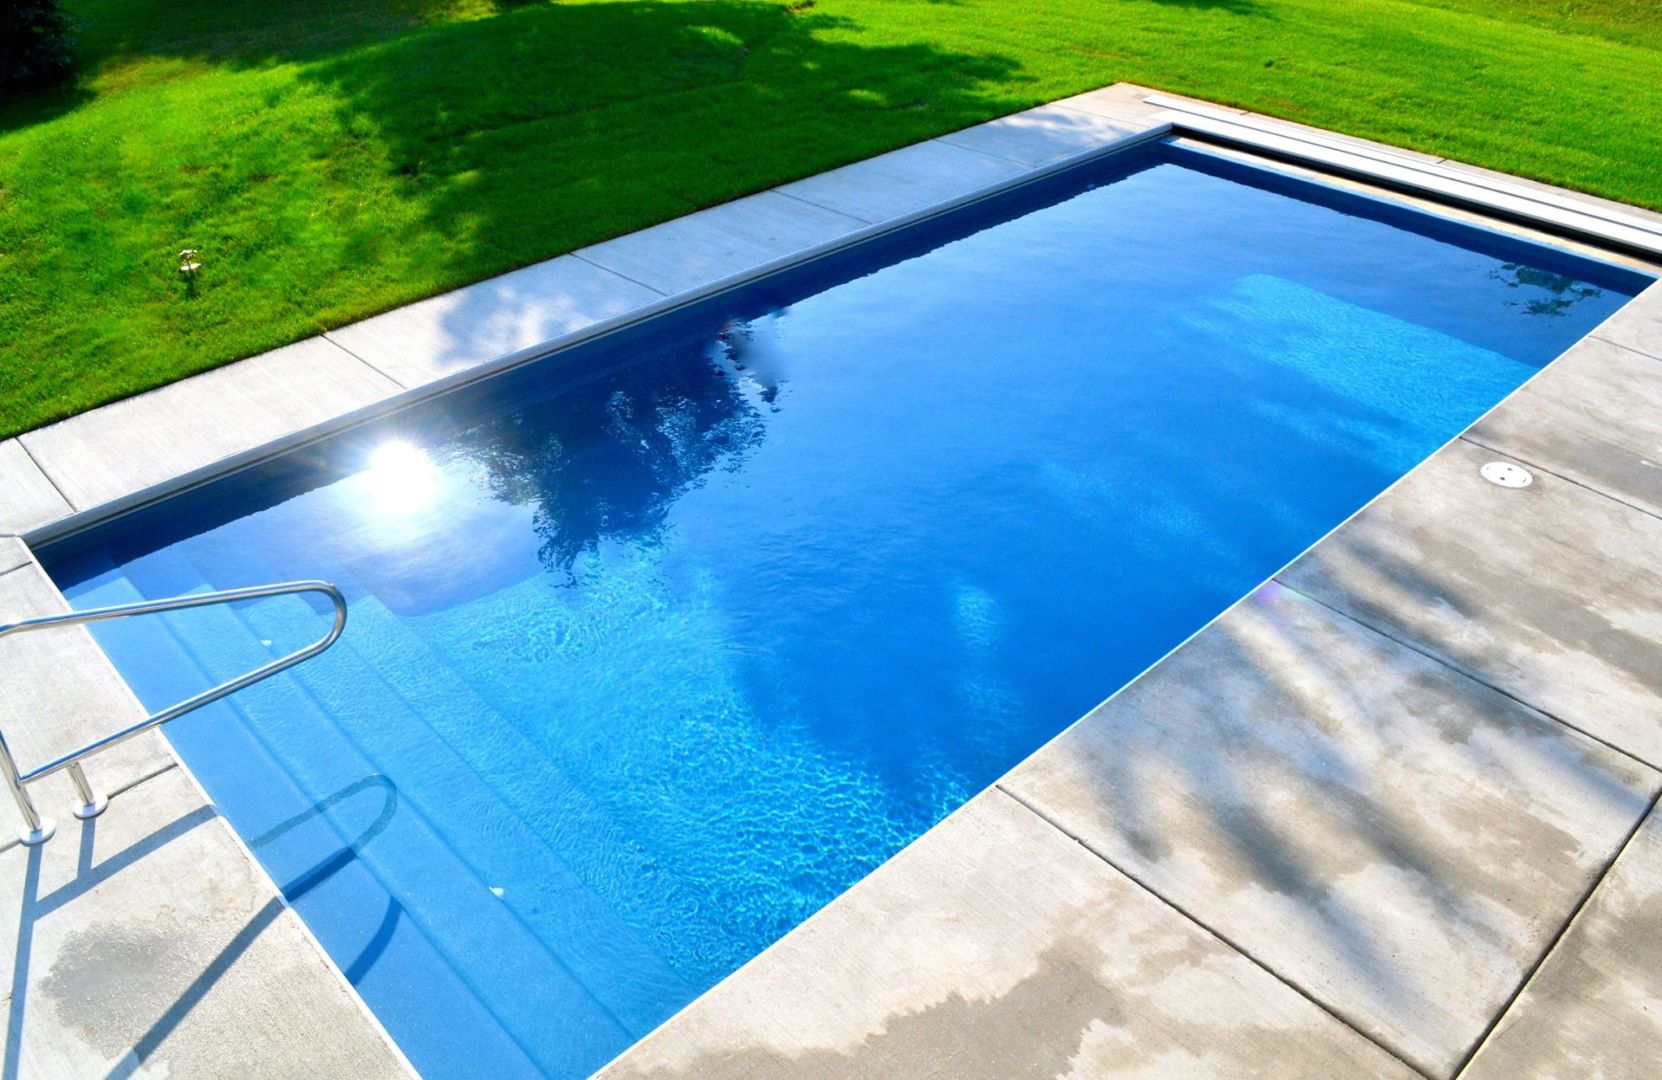 Zenith Inground Fiberglass Pool By Trilogy Patio Pleasures